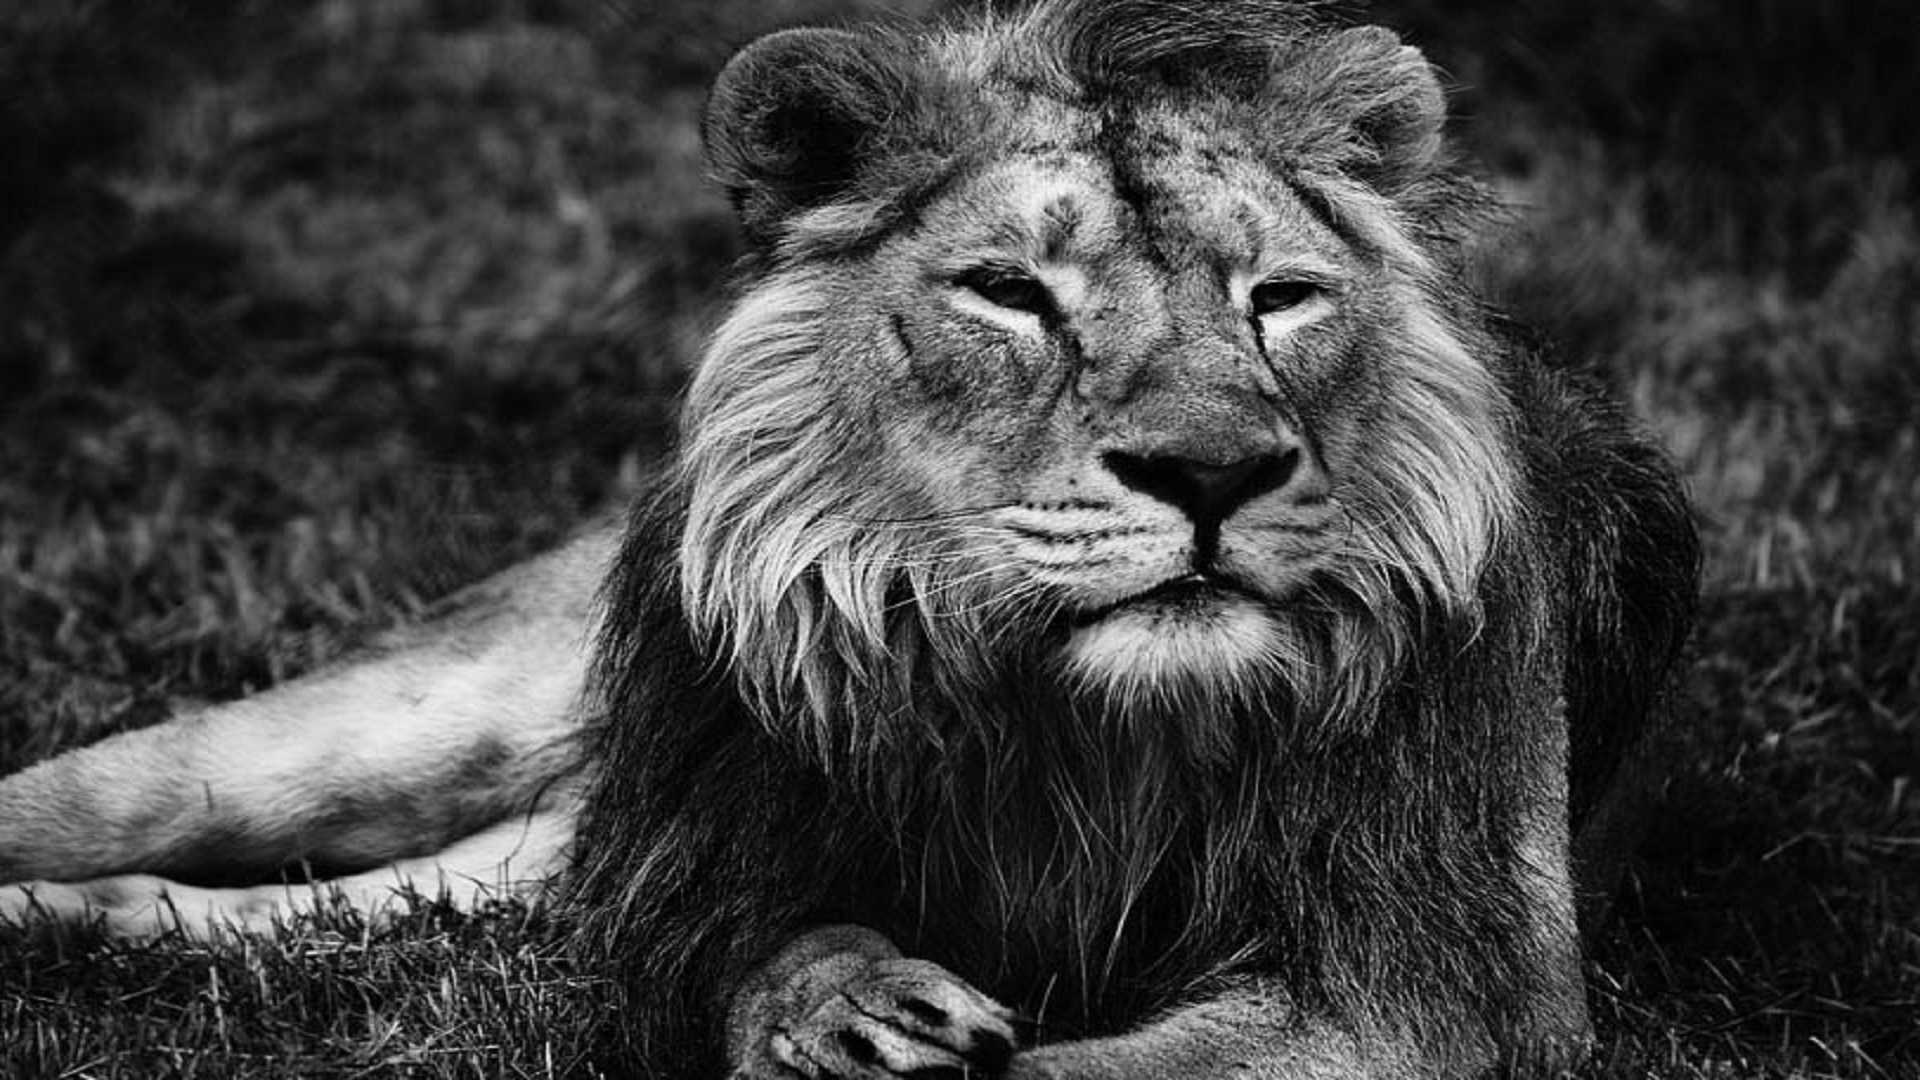 Lion Black And White Hd Free Wallpapers Hd Wallpaper